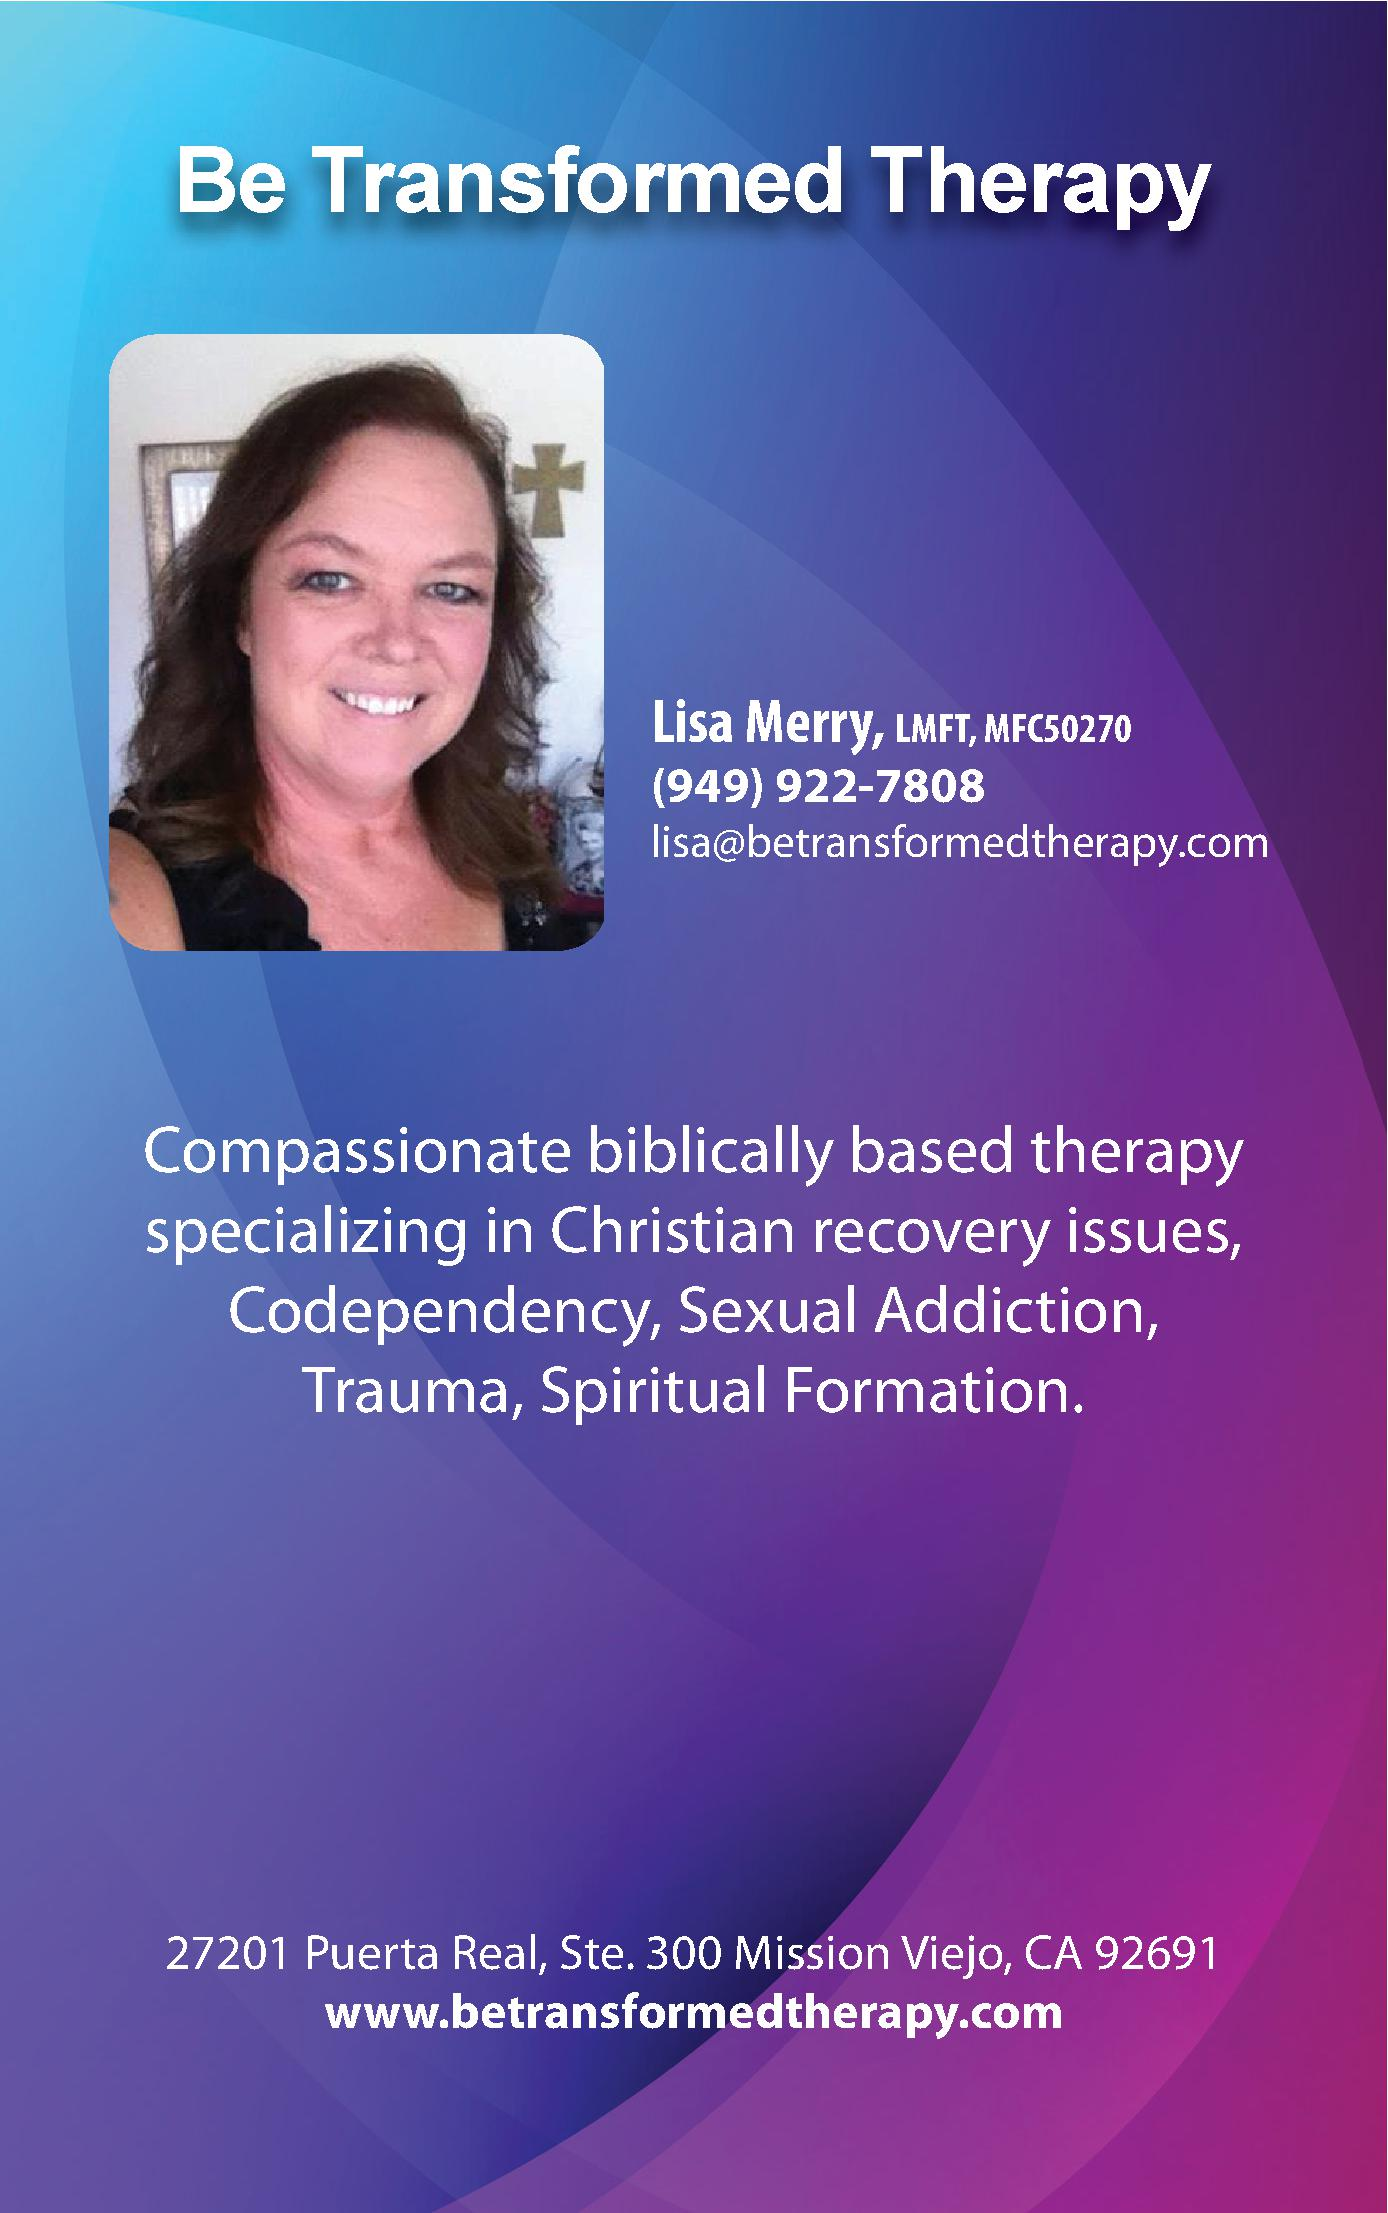 Be Transformed Therapy